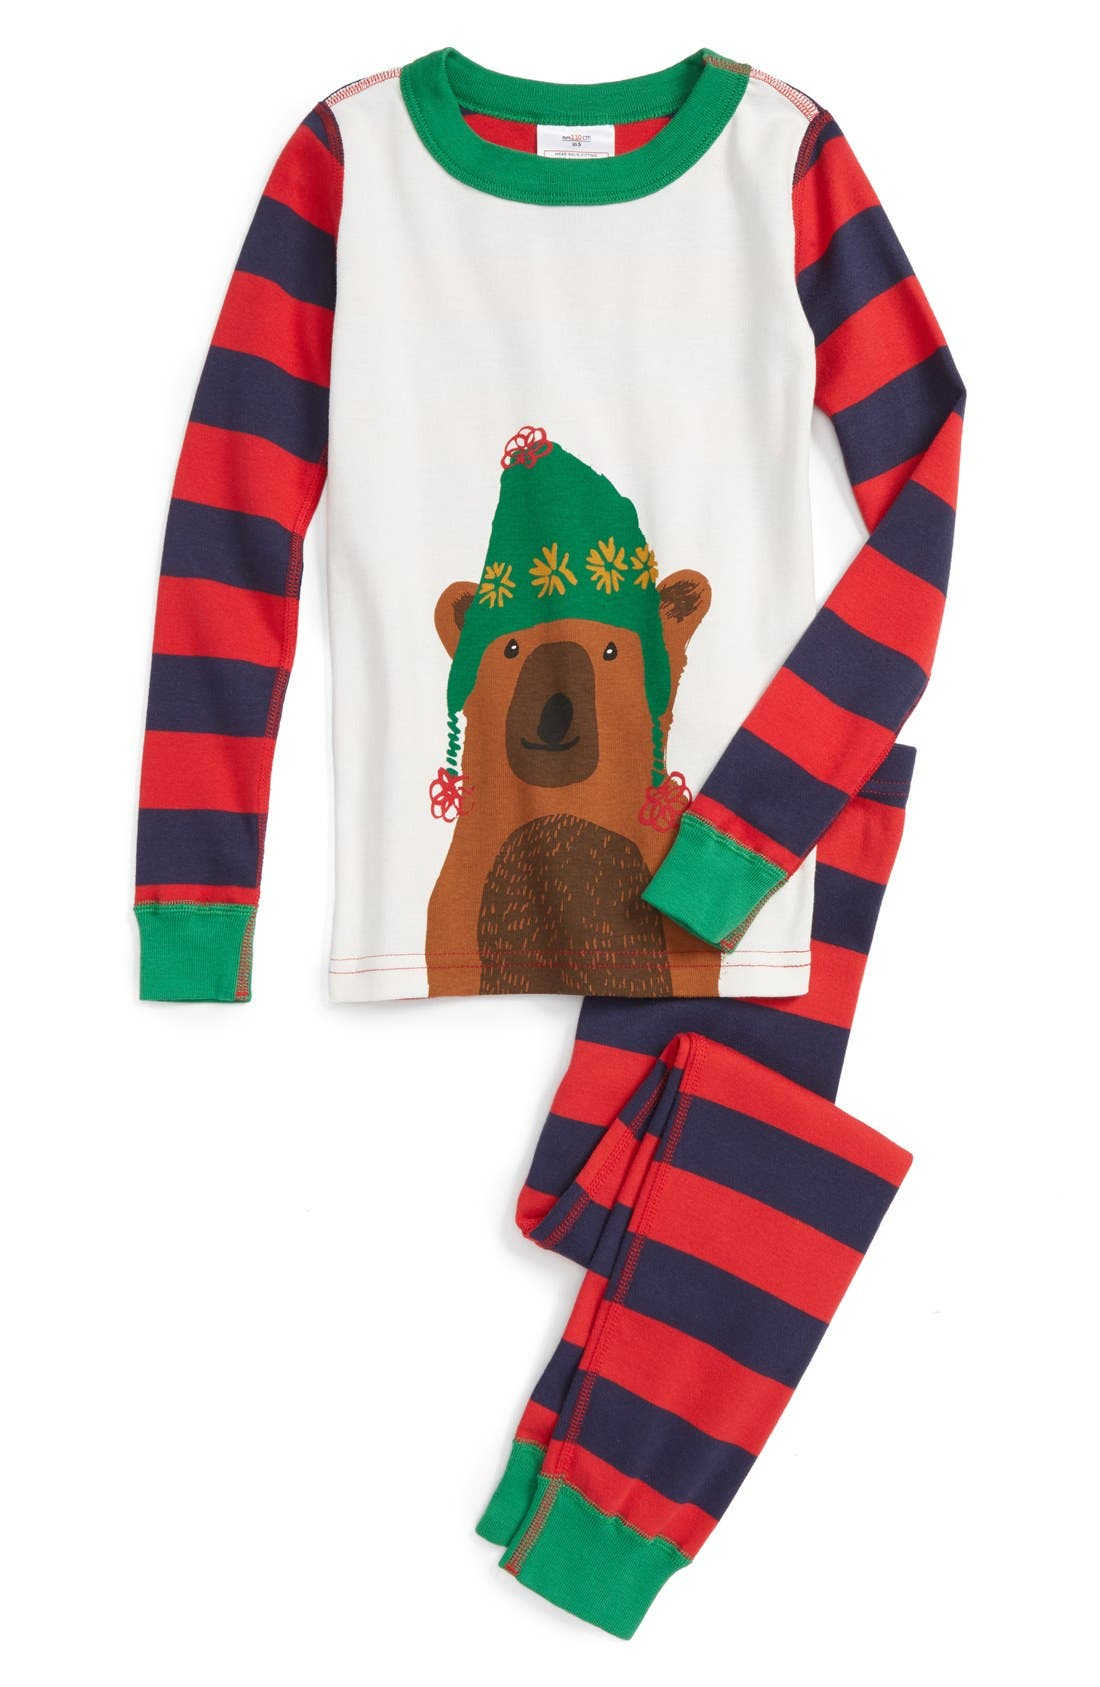 Alternate Image 1 Selected - Hanna Andersson Holiday Organic Cotton Fitted Two-Piece Pajamas (Toddler, Little Kid & Big Kid)